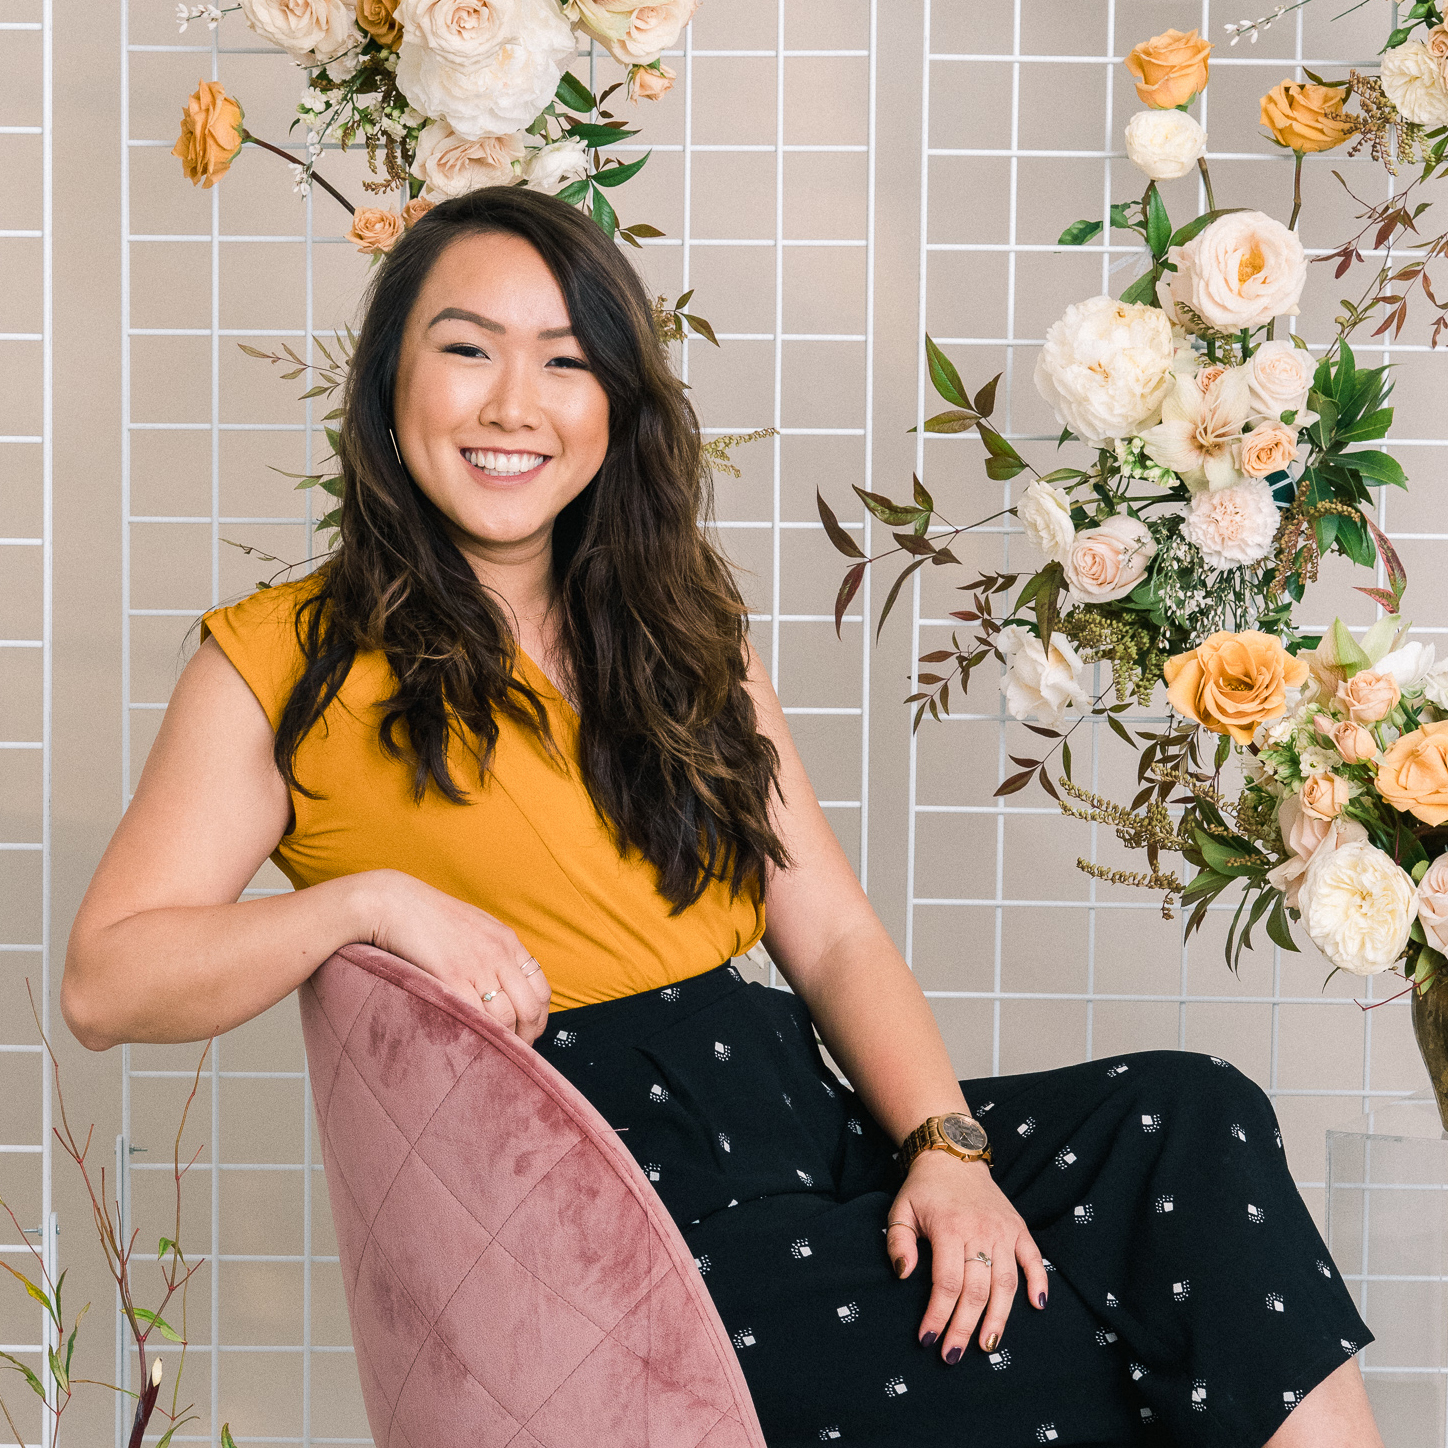 Connie WONG - Growing up in a family-run restaurant business, customer relationships, fast-paced working environments, and the constant aroma of tasty food with warm company have all become second nature for me. These elements drive my passion for weddings and events! Since I was young, I knew I had a knack for organization and planning, an eye for all things gold, glittery, and glamorous, and a true excitement for bringing good food and even better company together.While studying Business Administration at the University of Southern California (USC), I began cultivating this passion when I joined CCL Weddings and Events. I love that weddings bring people together, from all different places, backgrounds, cultures – no matter the relationships, memories, or ties to the happy couple – only for one thing…to eat, drink, and be merry in the name of love! I am a lover of all things celebratory – any excuse to eat, dress up, and boogie! When I'm not working as a financial analyst by day or assisting weddings by night, you can find me grubbing off of Jonathan Gold's 101 Best Restaurants List, on Space Mountain at Disneyland, marathon training or yoga posing, or playing fetch at the park with my Belgian Shepard, Beignet.I am thrilled to have found my passion coordinating events that lets my business expertise shine in a creative, personal context. My enthusiasm, energy and precision ensure that all of my clients experience not just a joyful, unforgettable celebration, but also the warm and professional service they deserve as they plan their BIG DAY.*click the photo for fun details about Connie!